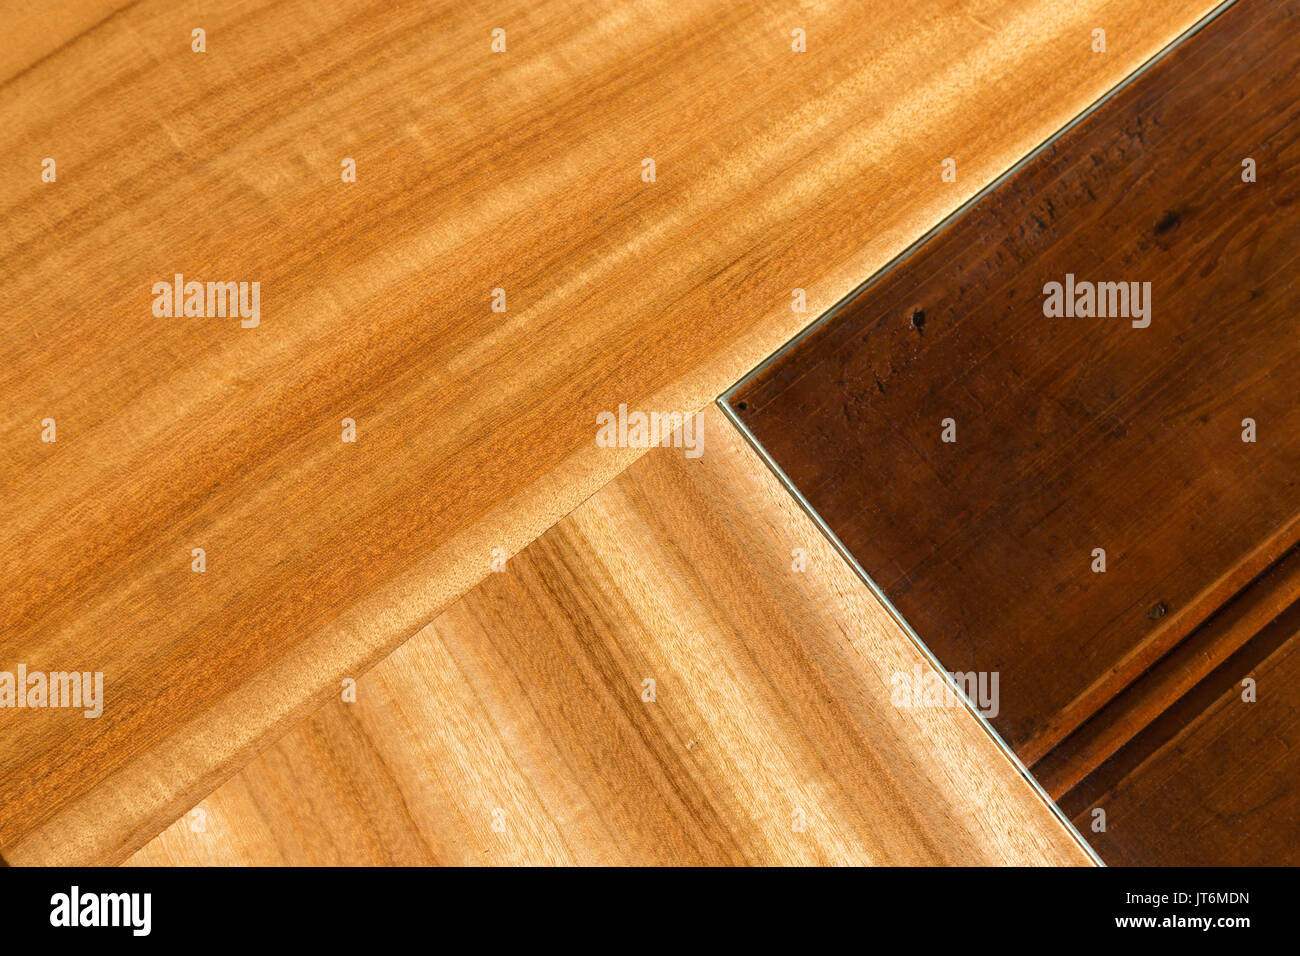 joinery stockfotos joinery bilder alamy. Black Bedroom Furniture Sets. Home Design Ideas